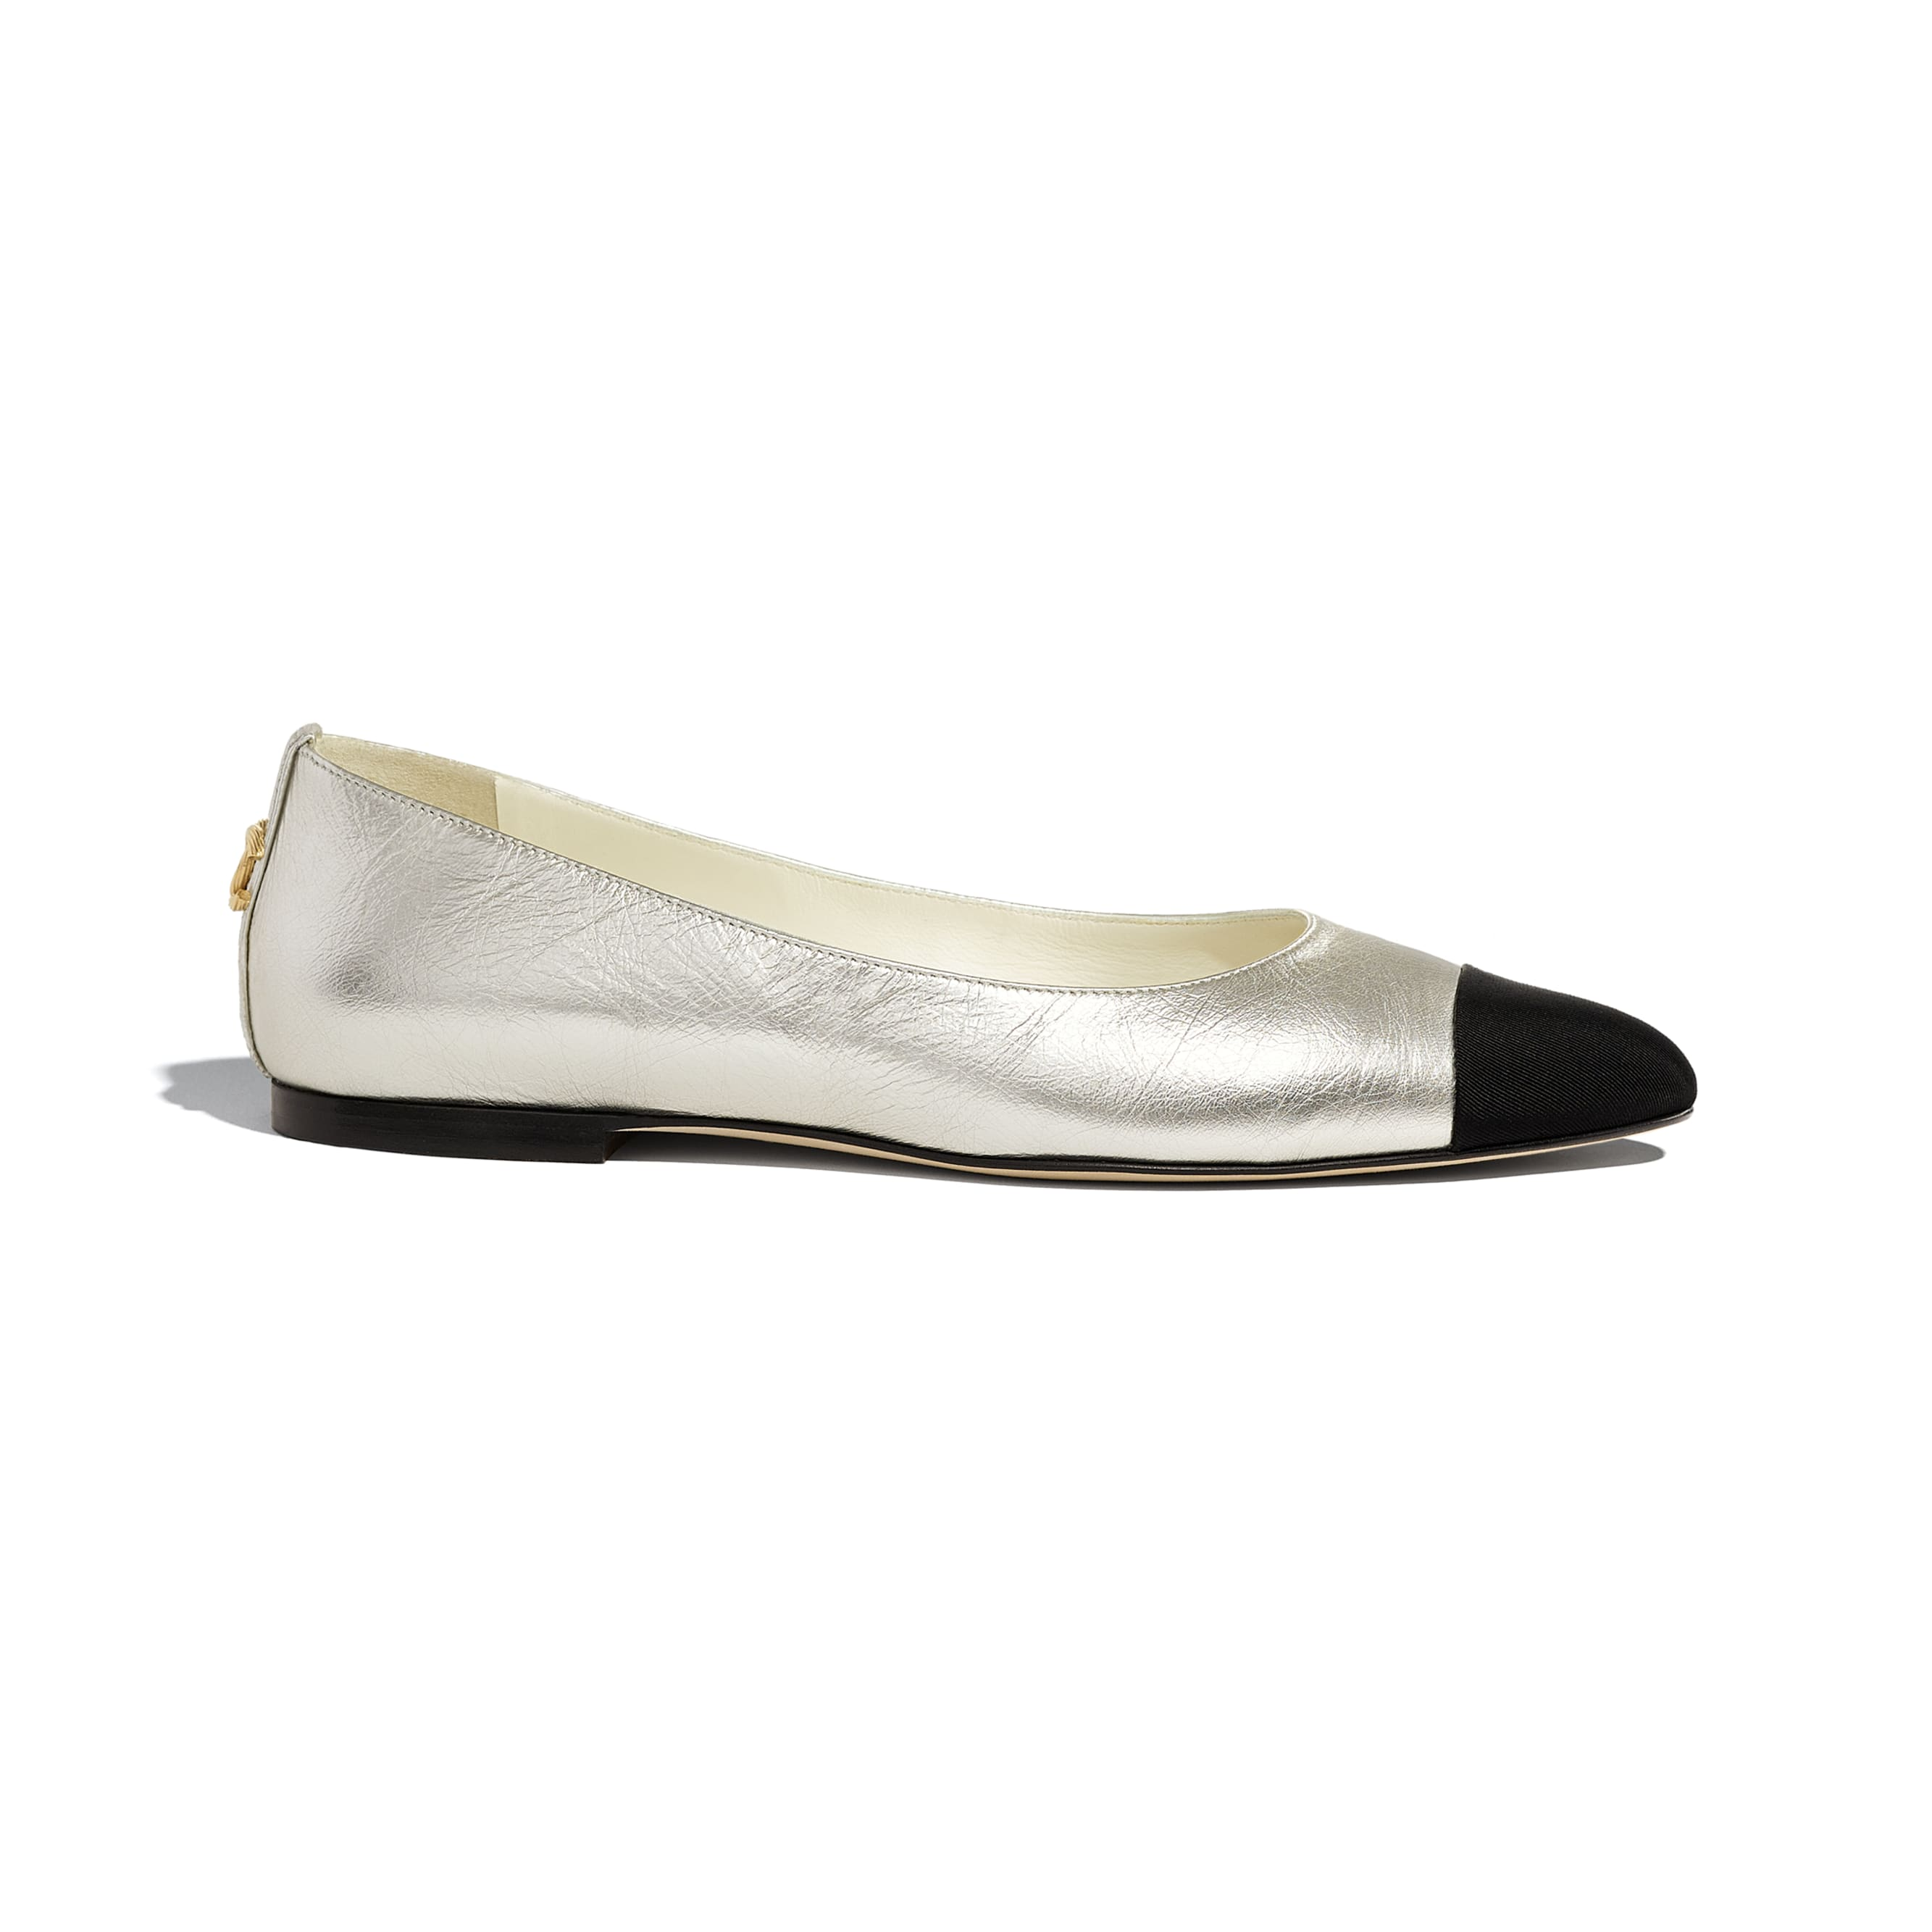 Flats - Silver & Black - Laminated Lambskin & Grosgrain - CHANEL - Default view - see standard sized version